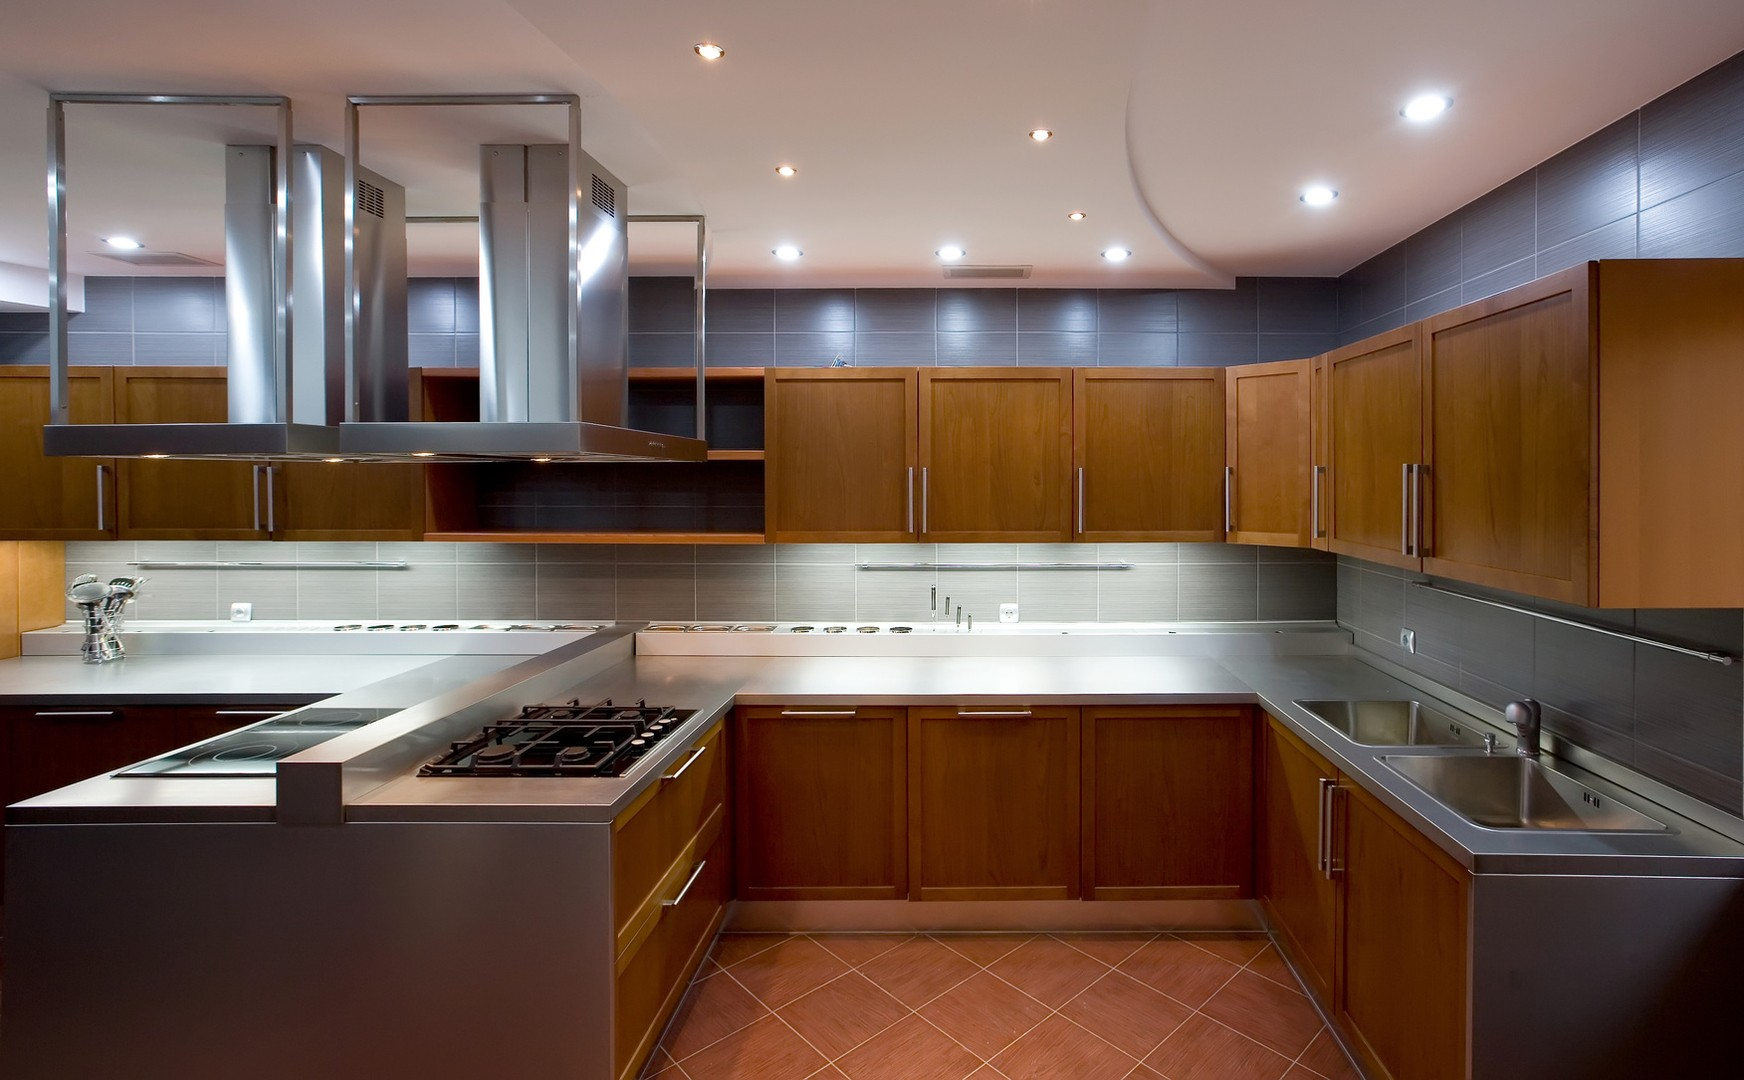 commercial kitchen remodeling - SoFlo Kitchen Remodeling & Custom Cabinet Installation - backsplashes, flooring, countertops